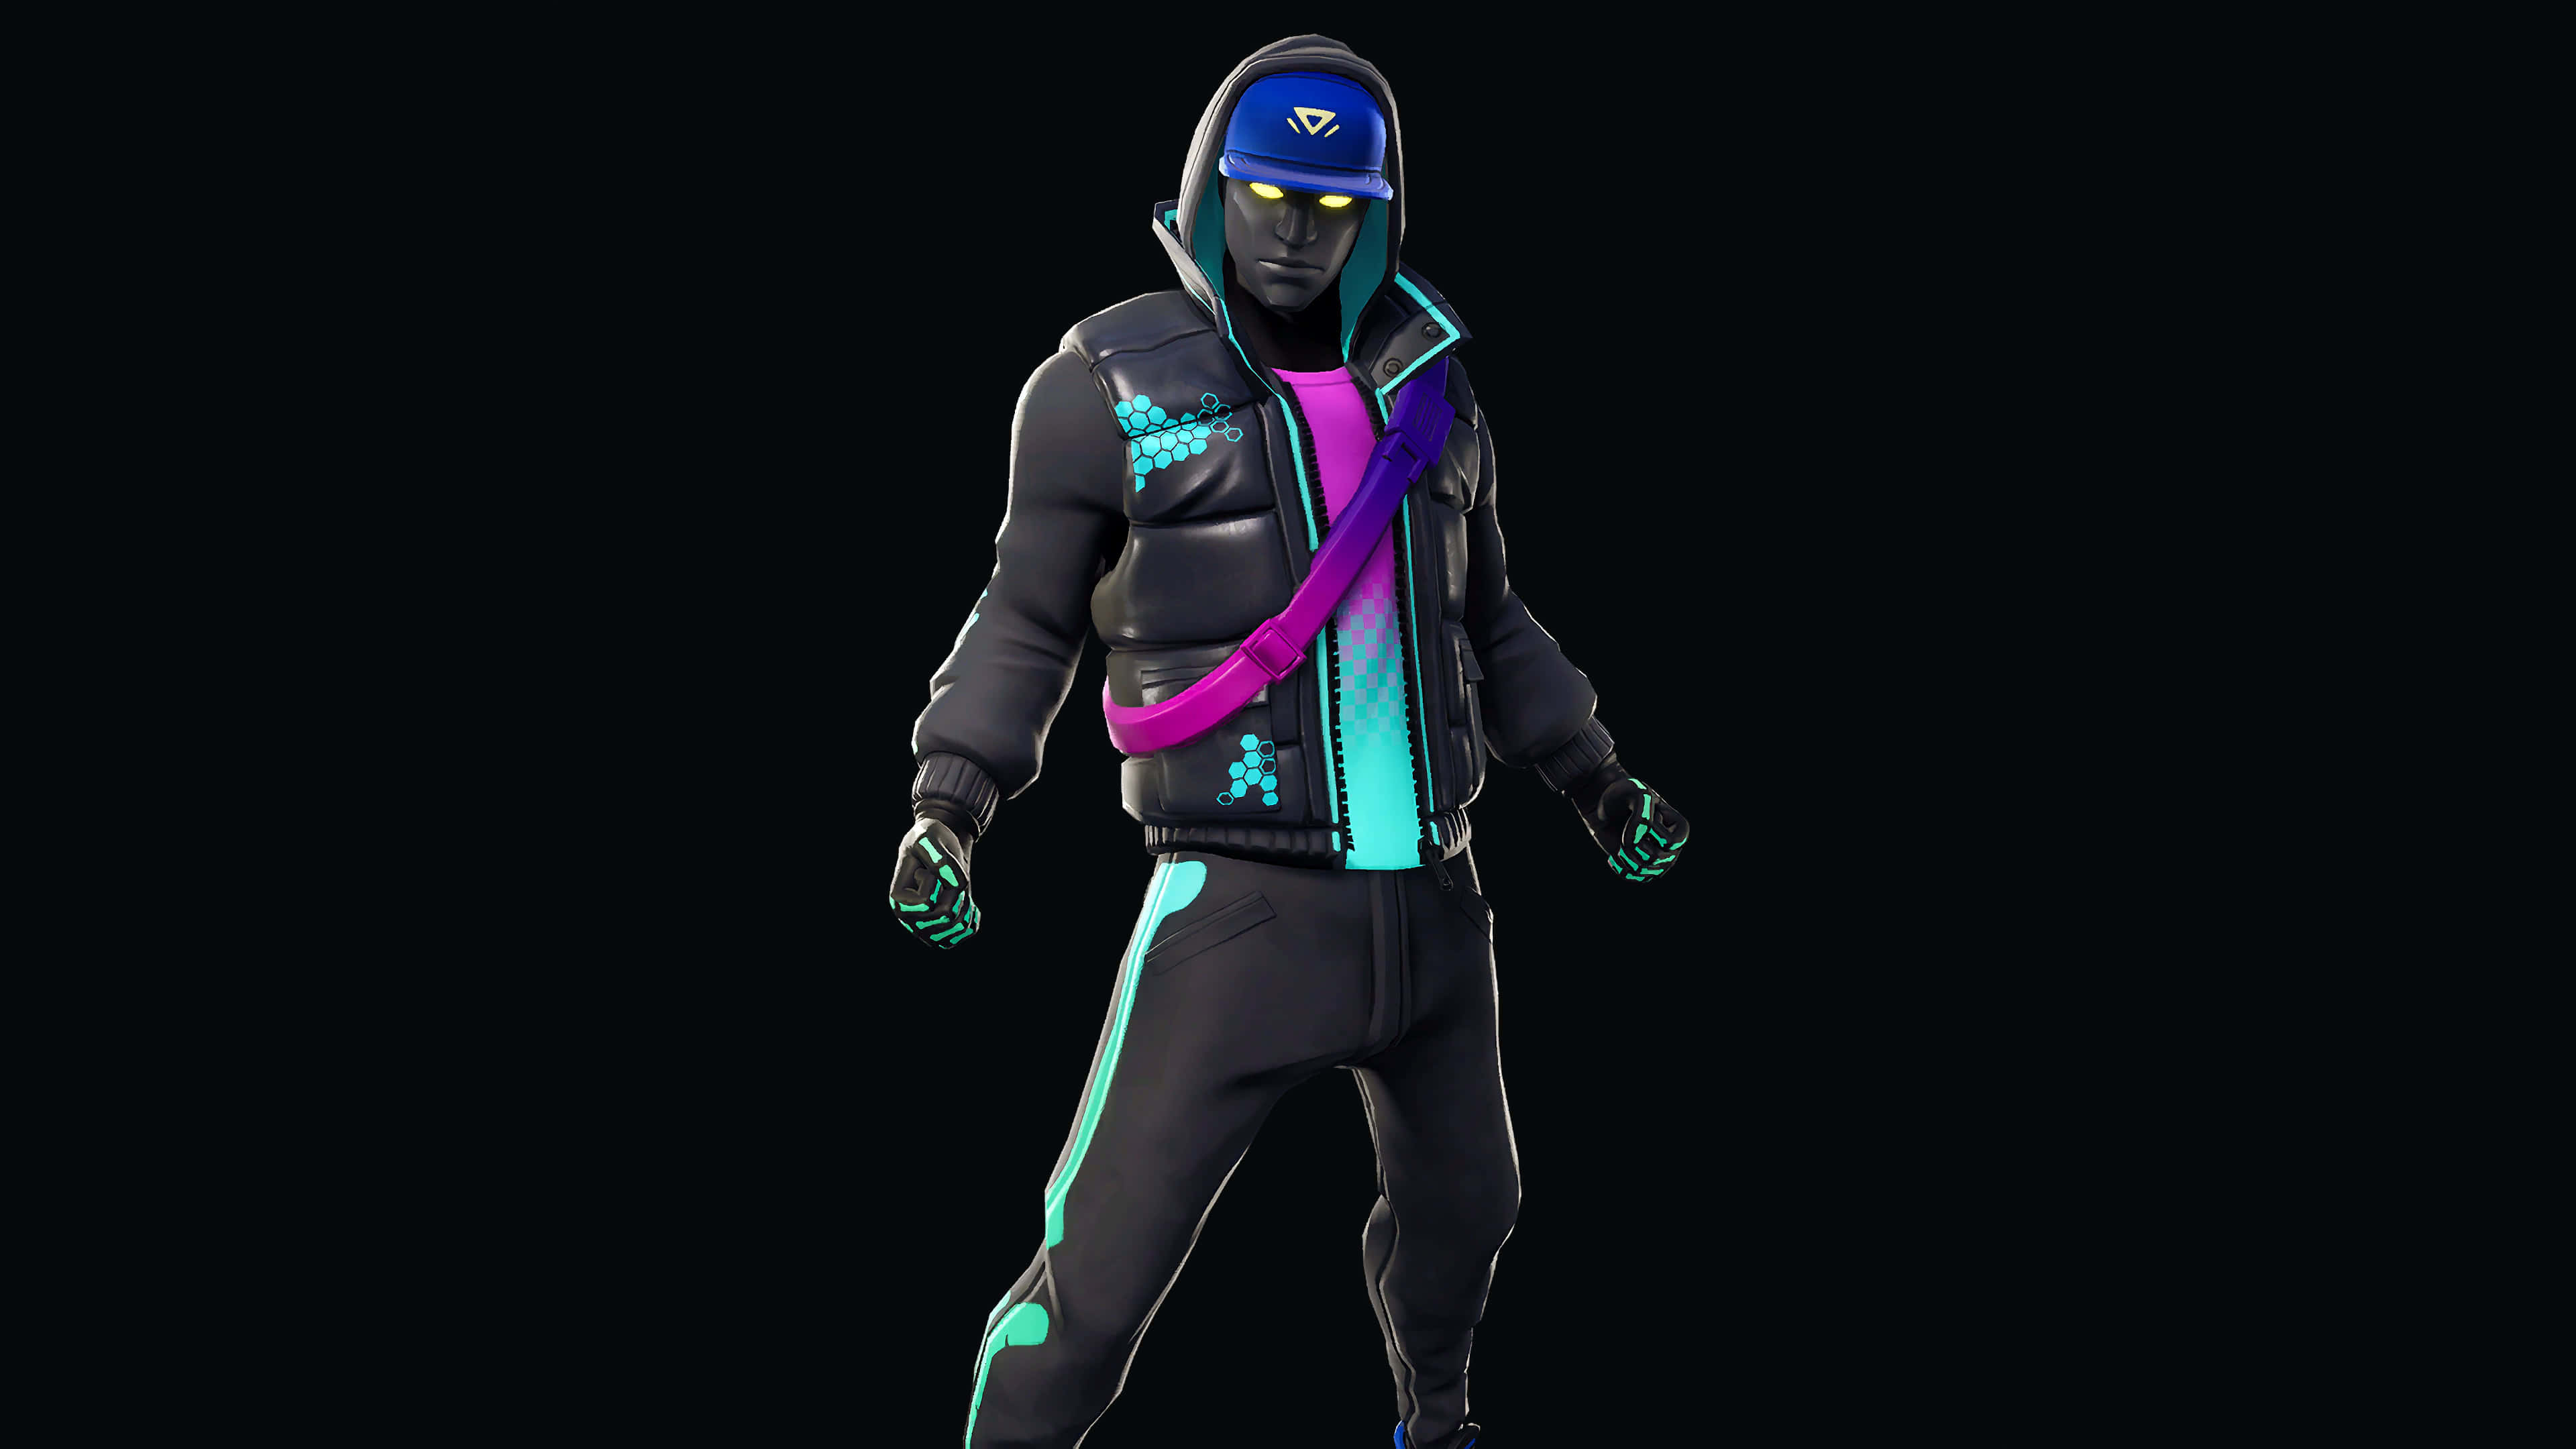 fortnite cryptic set cryptic skin outfit uhd 4k wallpaper